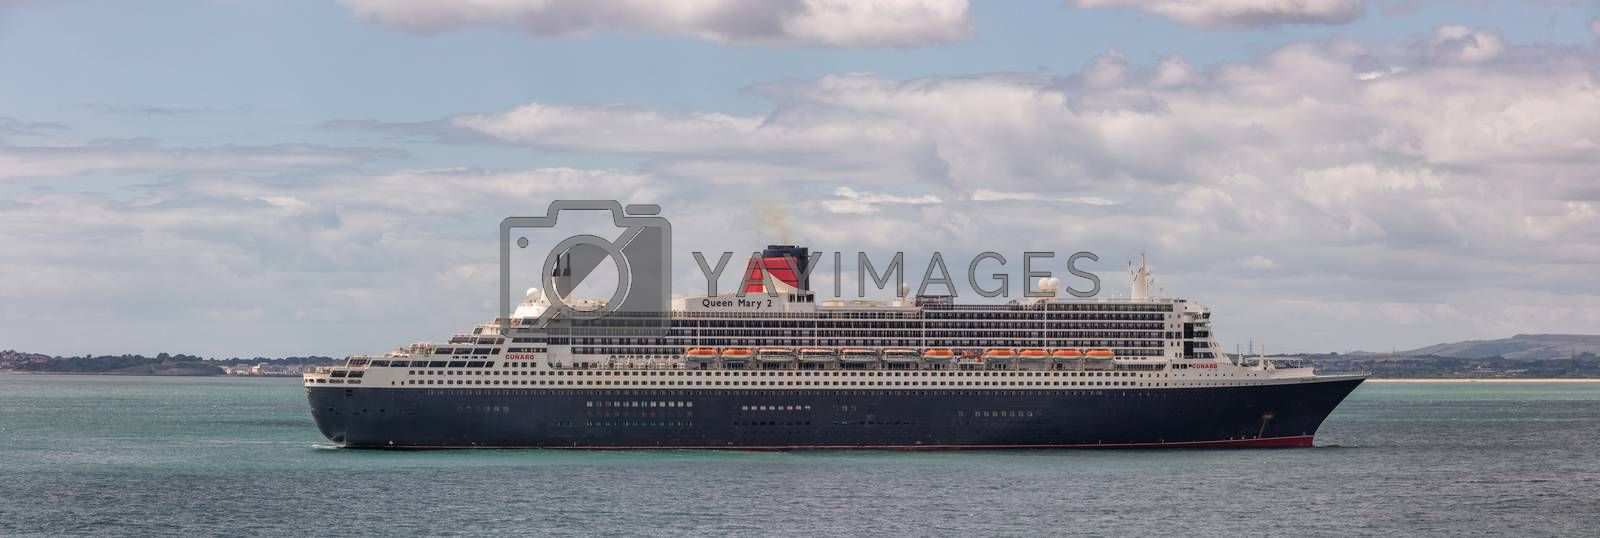 Weymouth Bay, United Kingdom - July 6, 2020: Beautiful panoramic shot of Cunard cruise ship Queen Mary 2 anchored in Weymouth Bay.